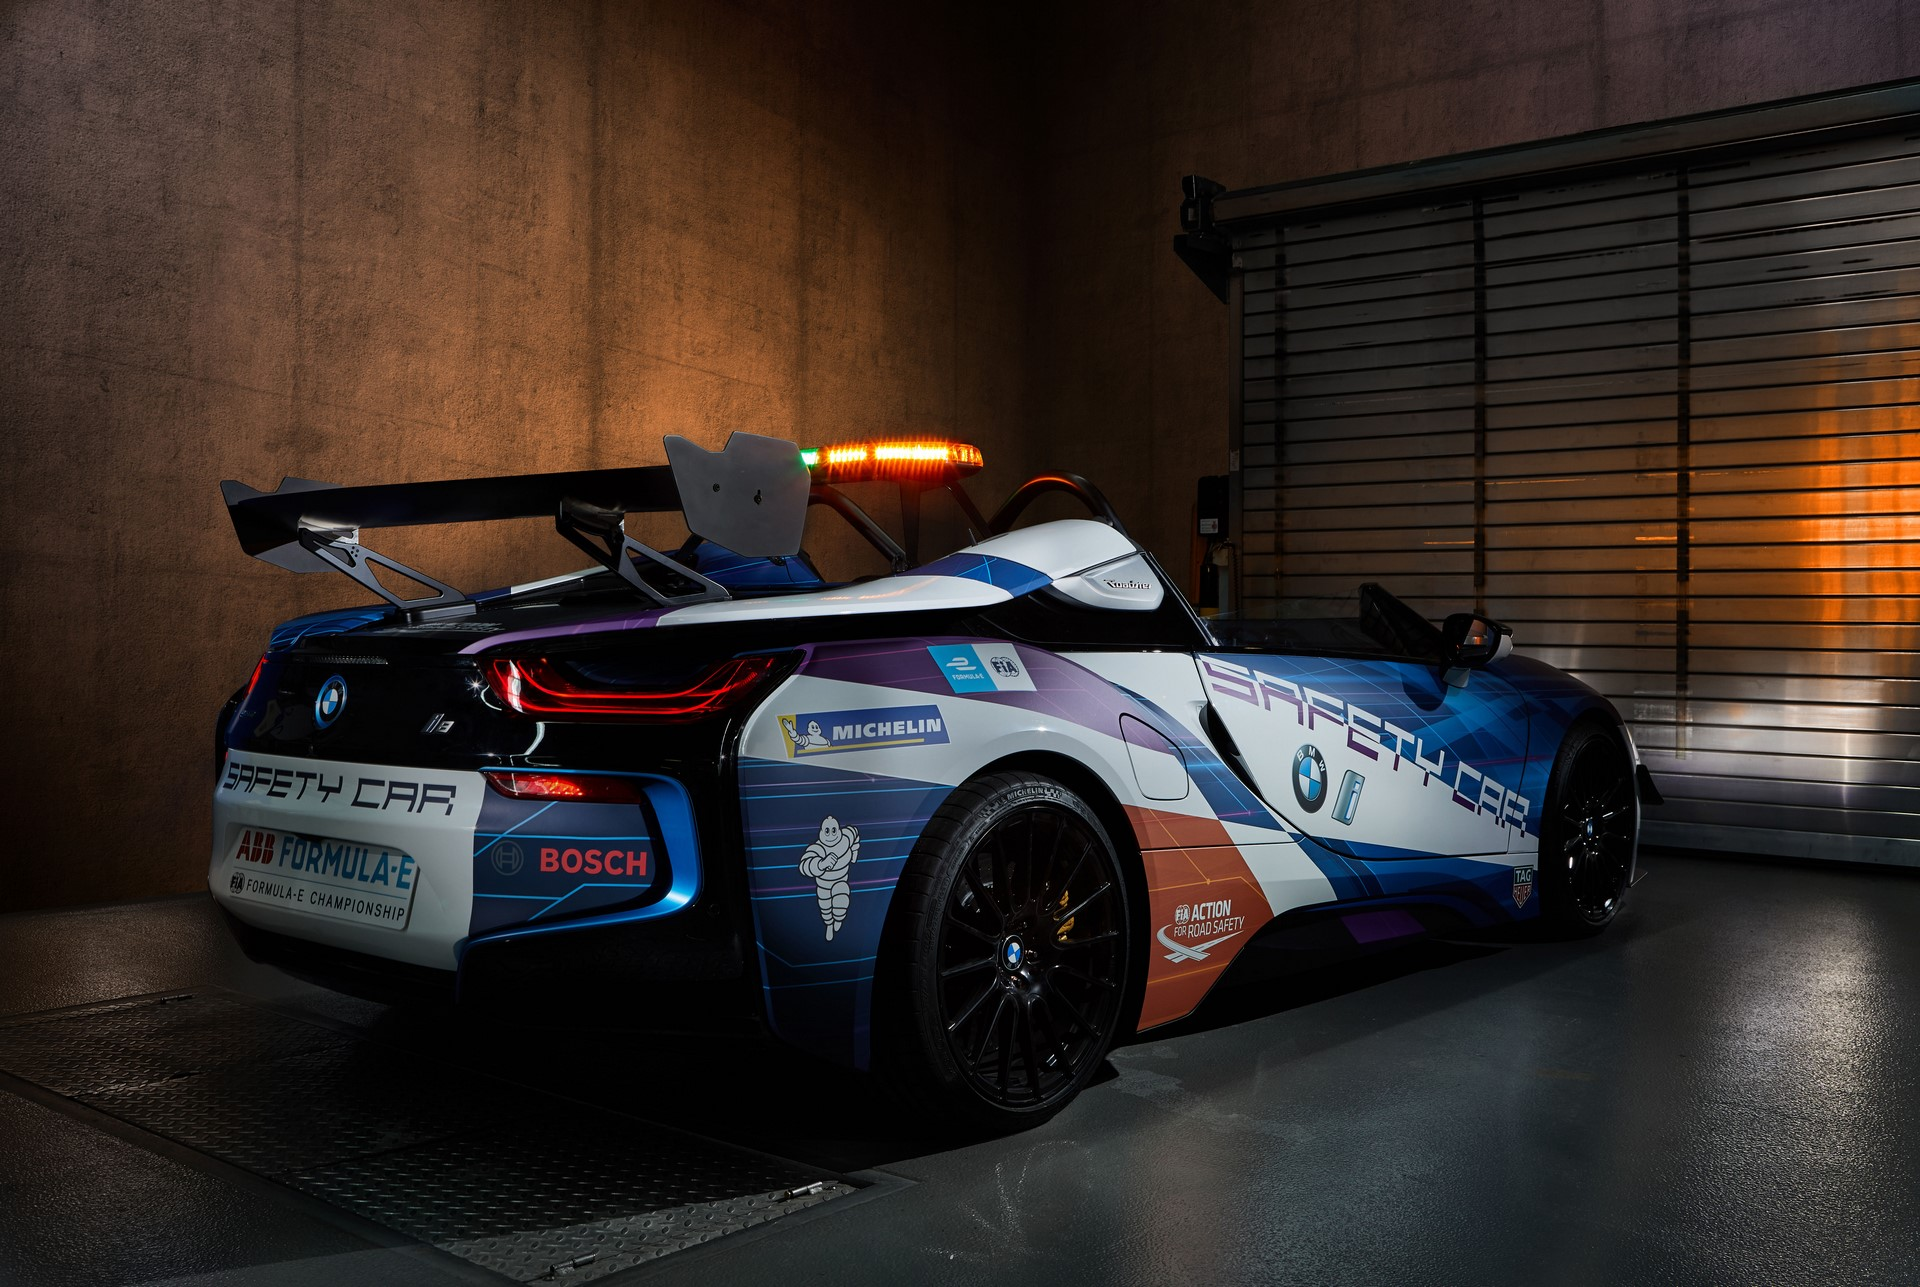 BMW-i8-Speedster-Formula-E-Safety-Car-2